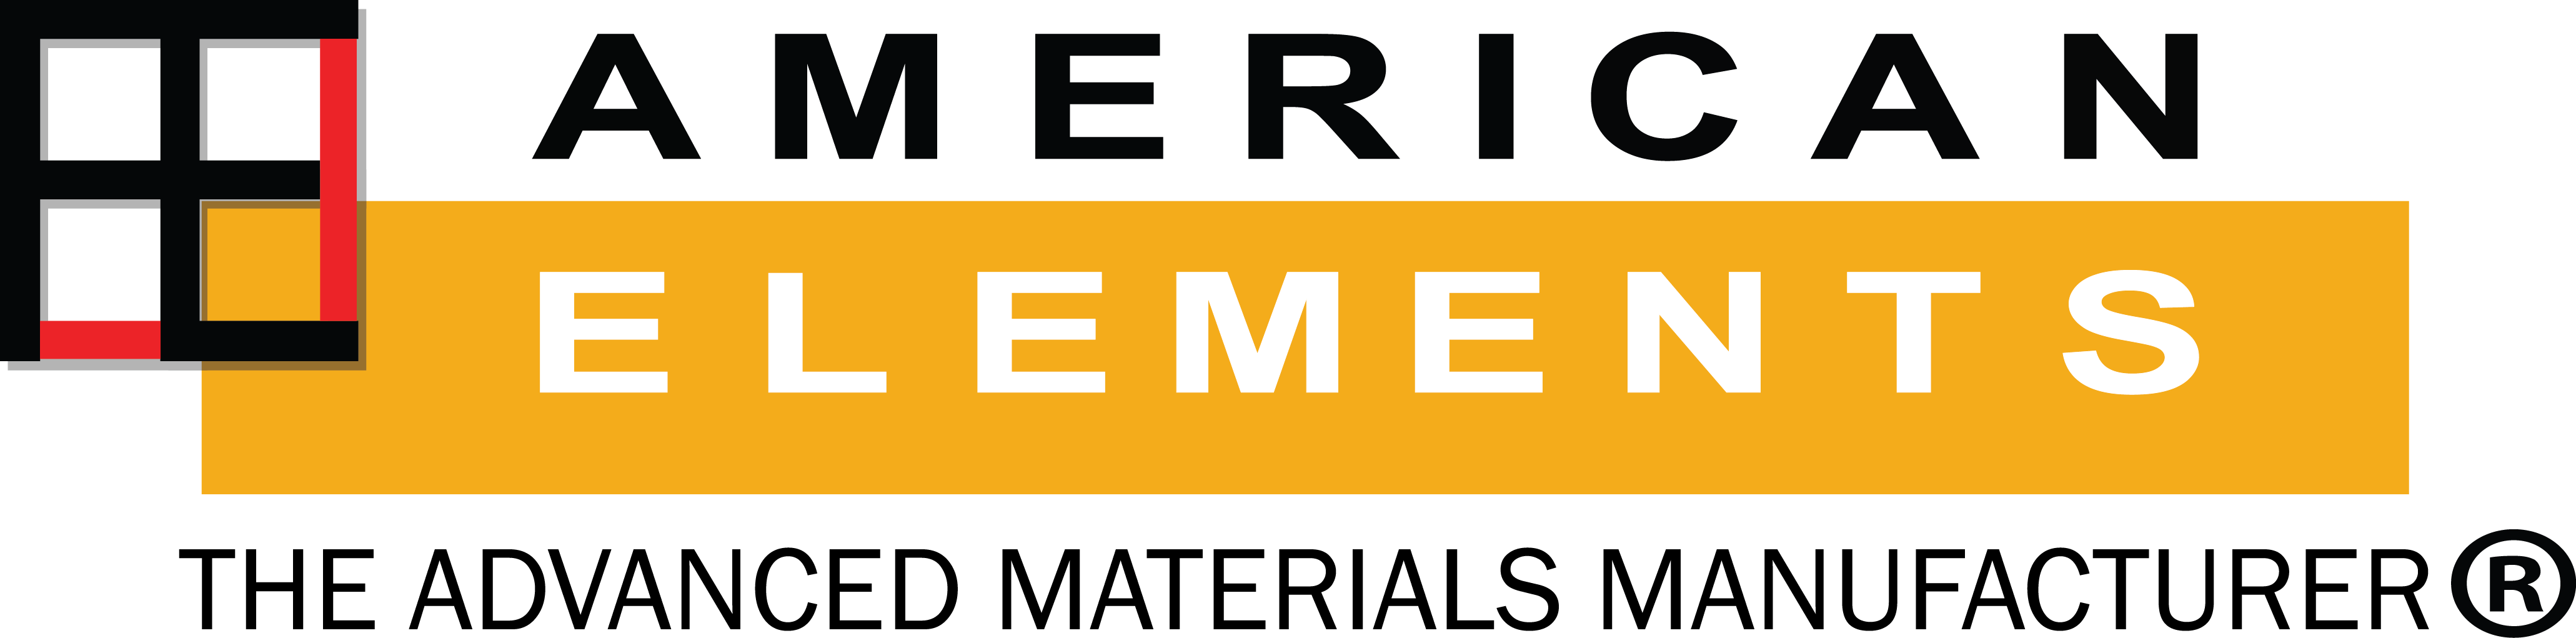 American Elements, global manufacturer of high purity advanced nanomaterials, thin films, foils, targets for energy, medical & nuclear target development